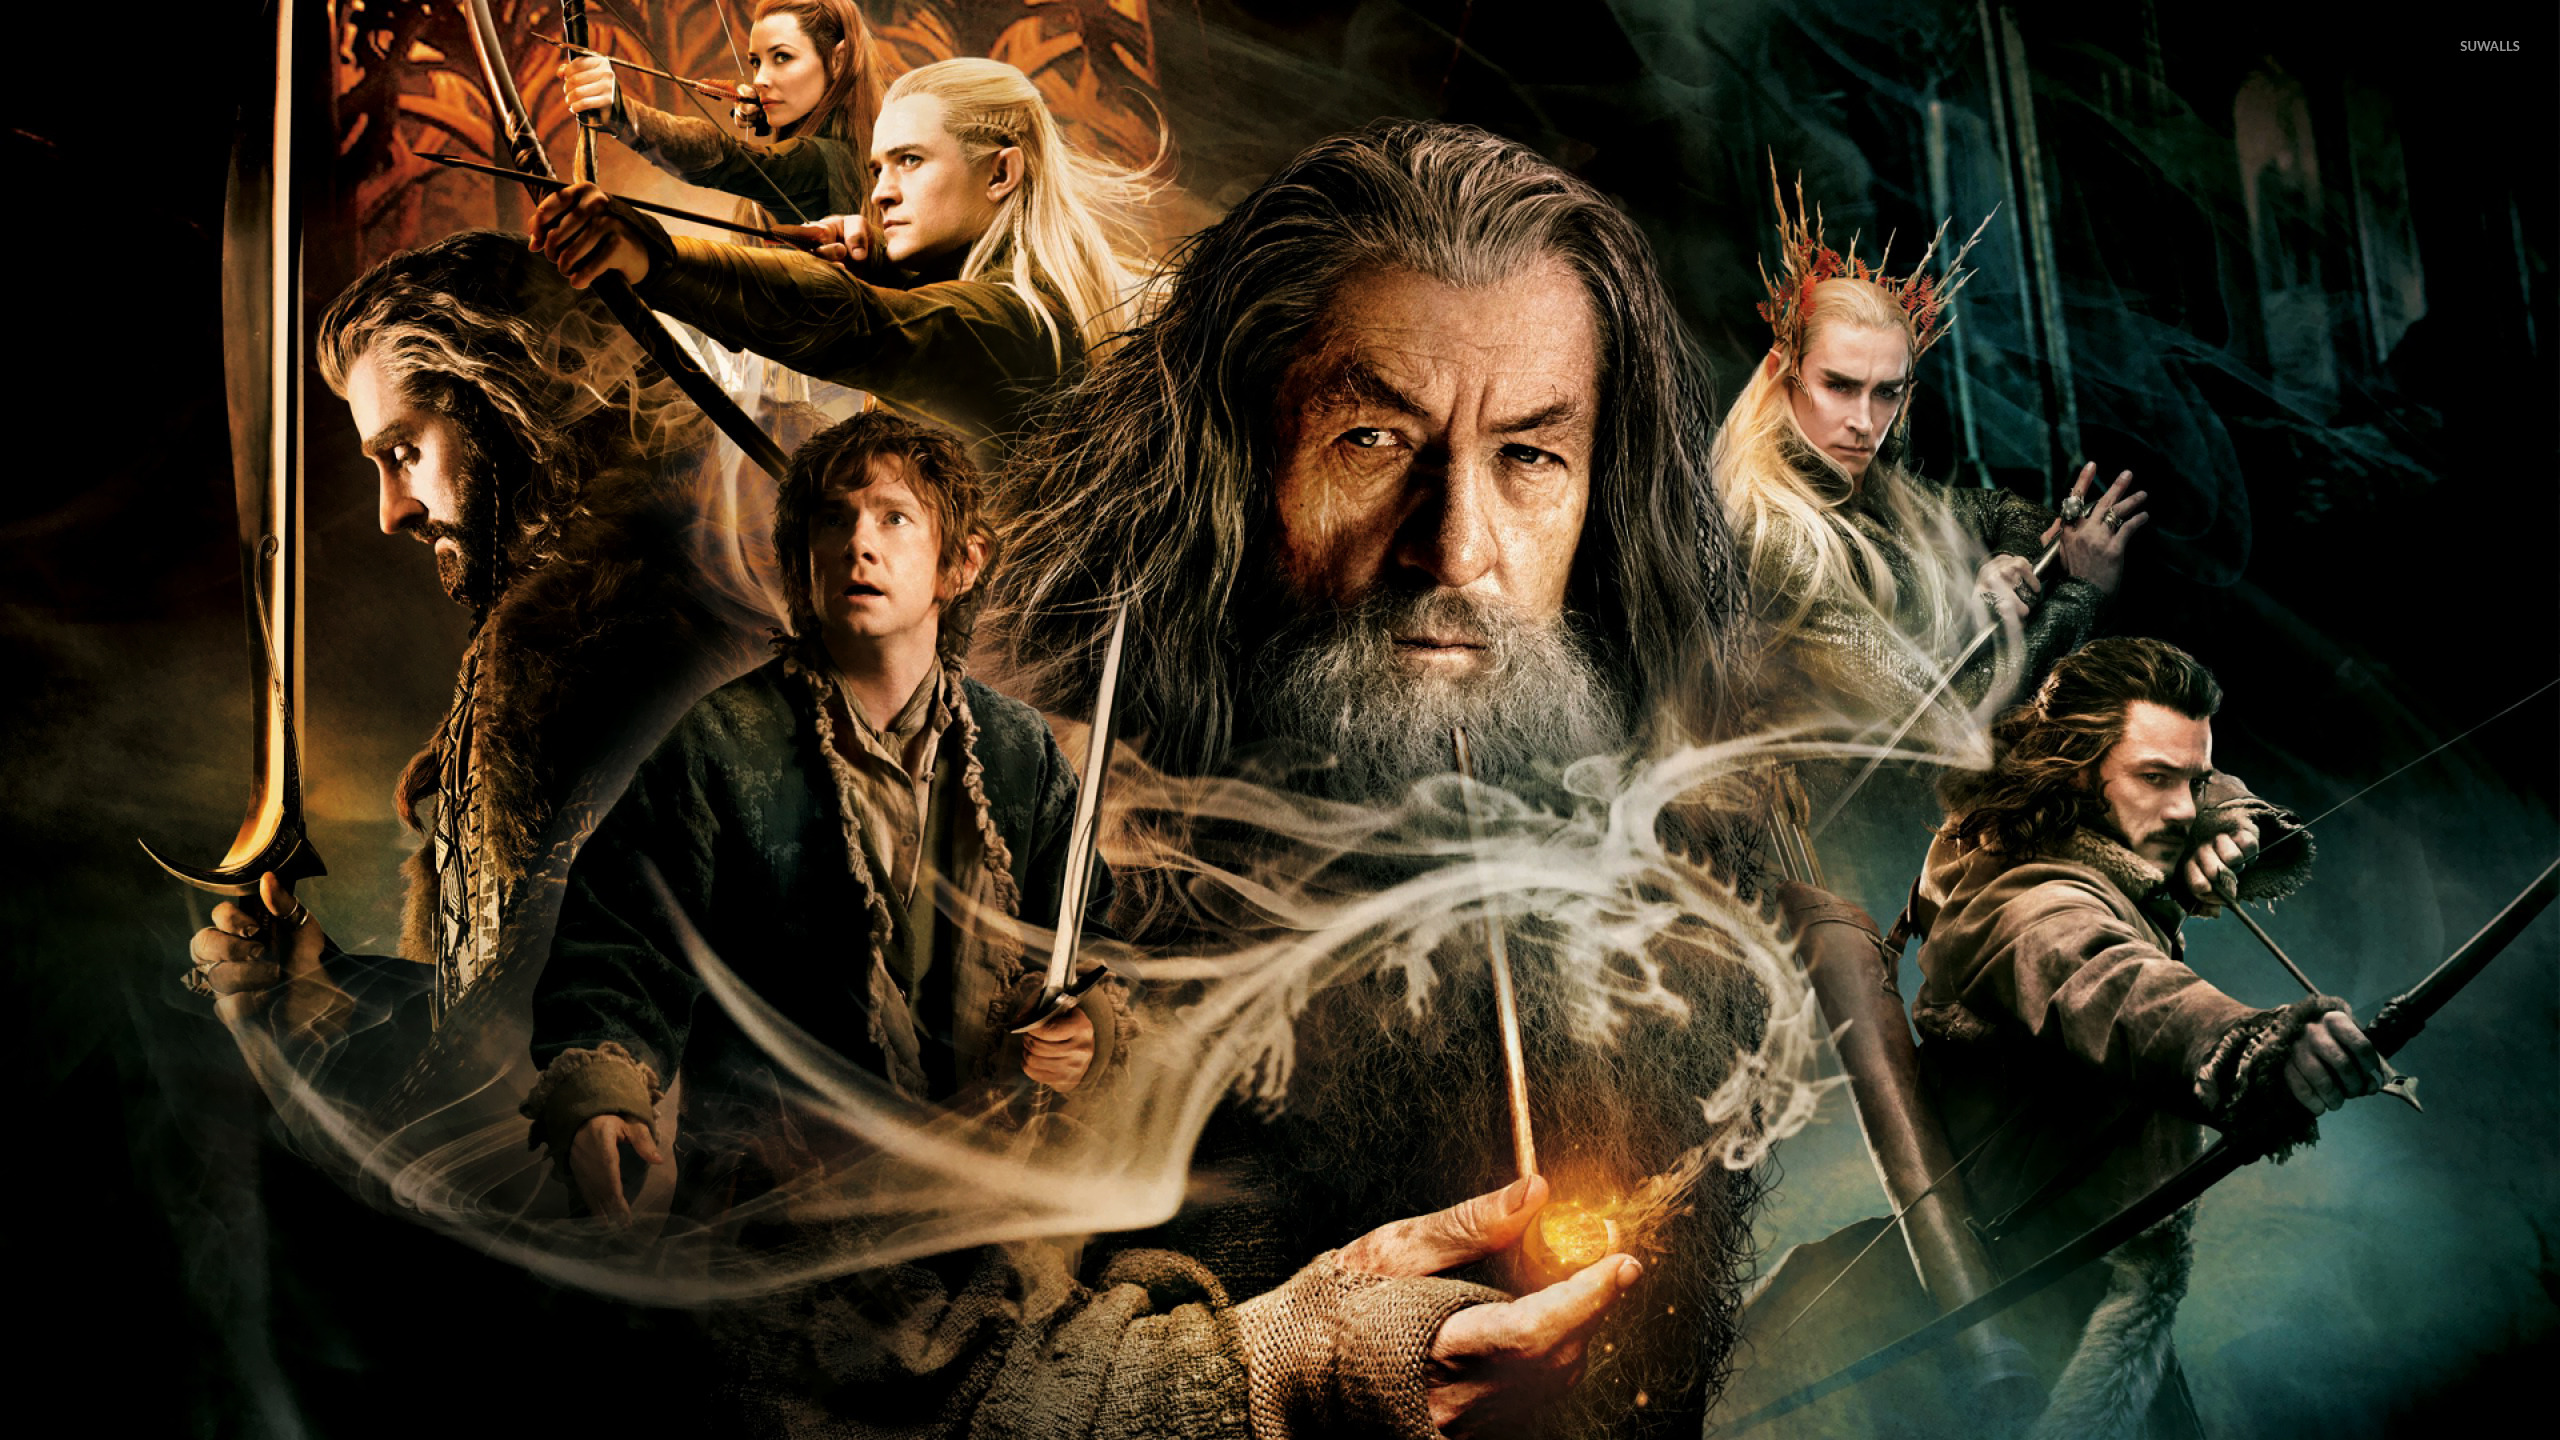 the hobbit movie wallpapers - photo #30